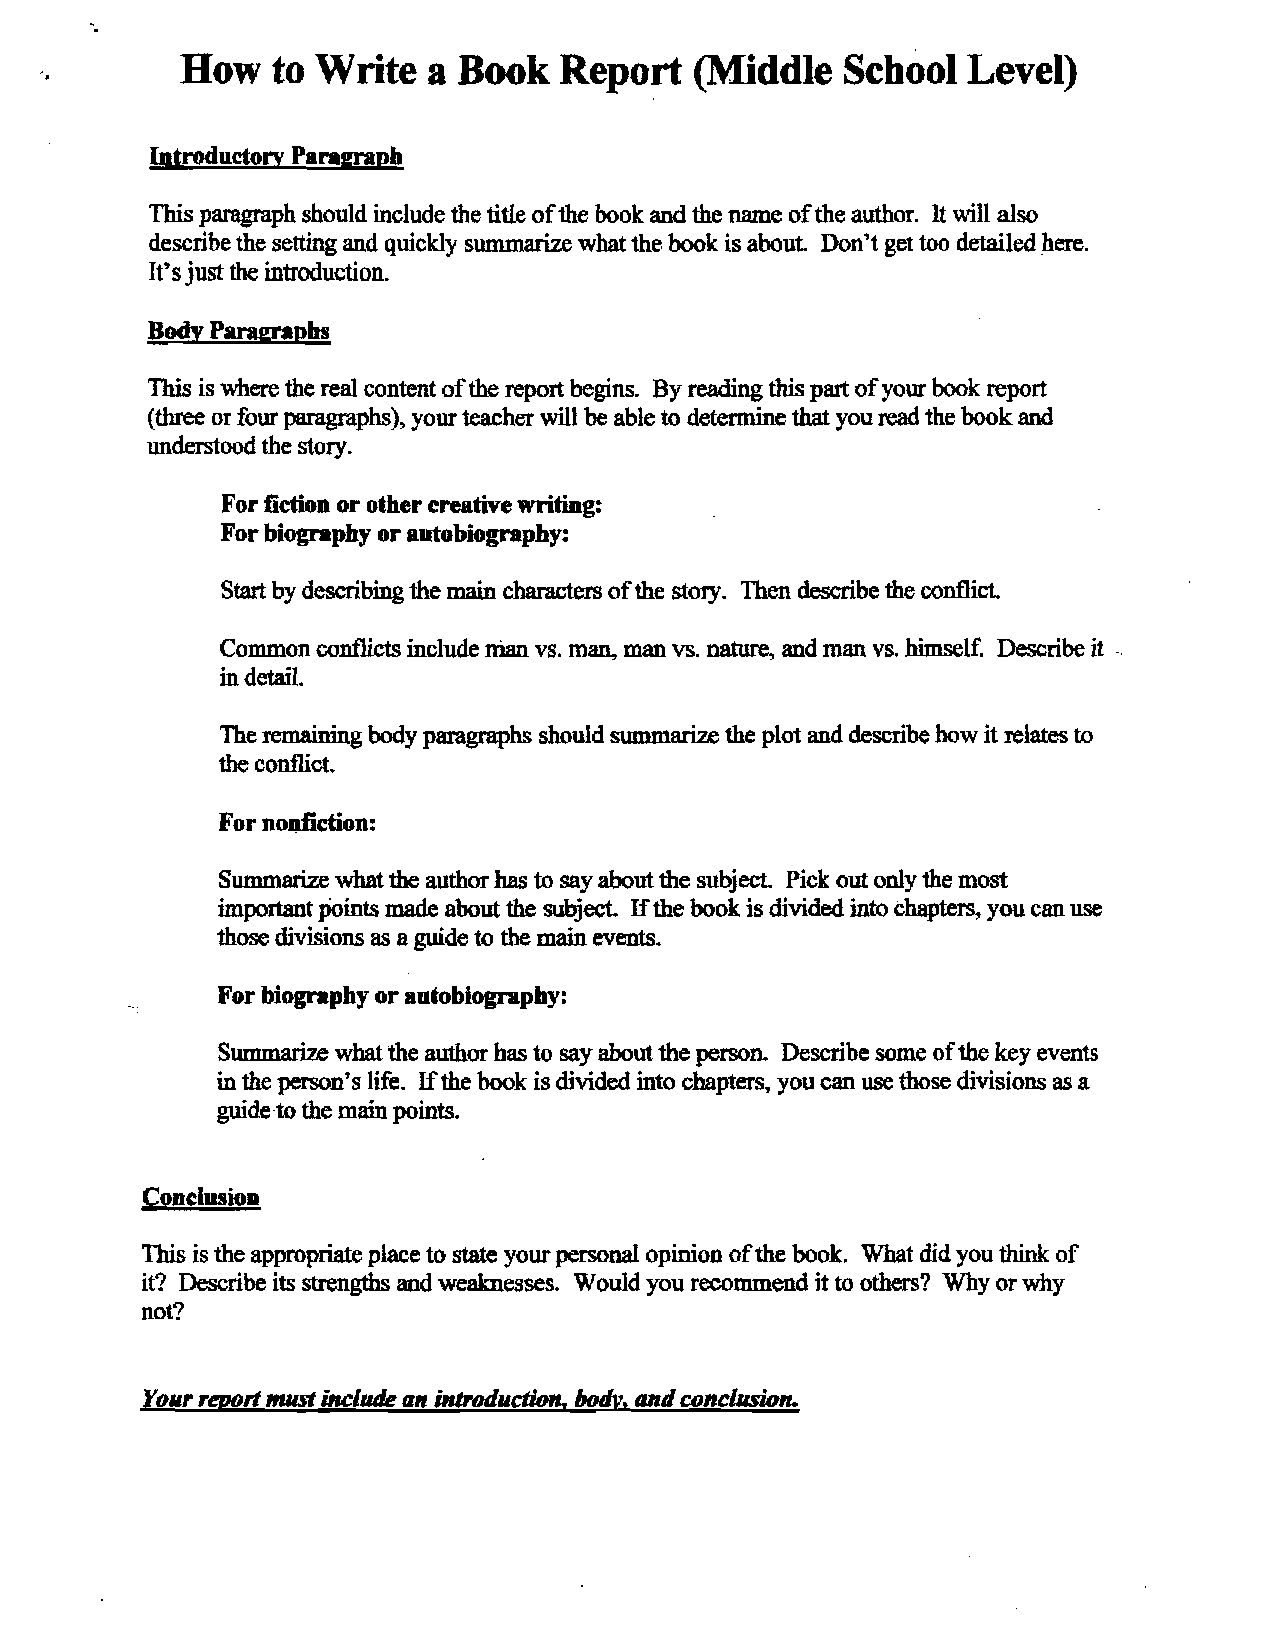 020 Canterbury Tales Essay Research Paper Topics Prologue Questions Outline Shocking Sample Technology About Business Economics Full